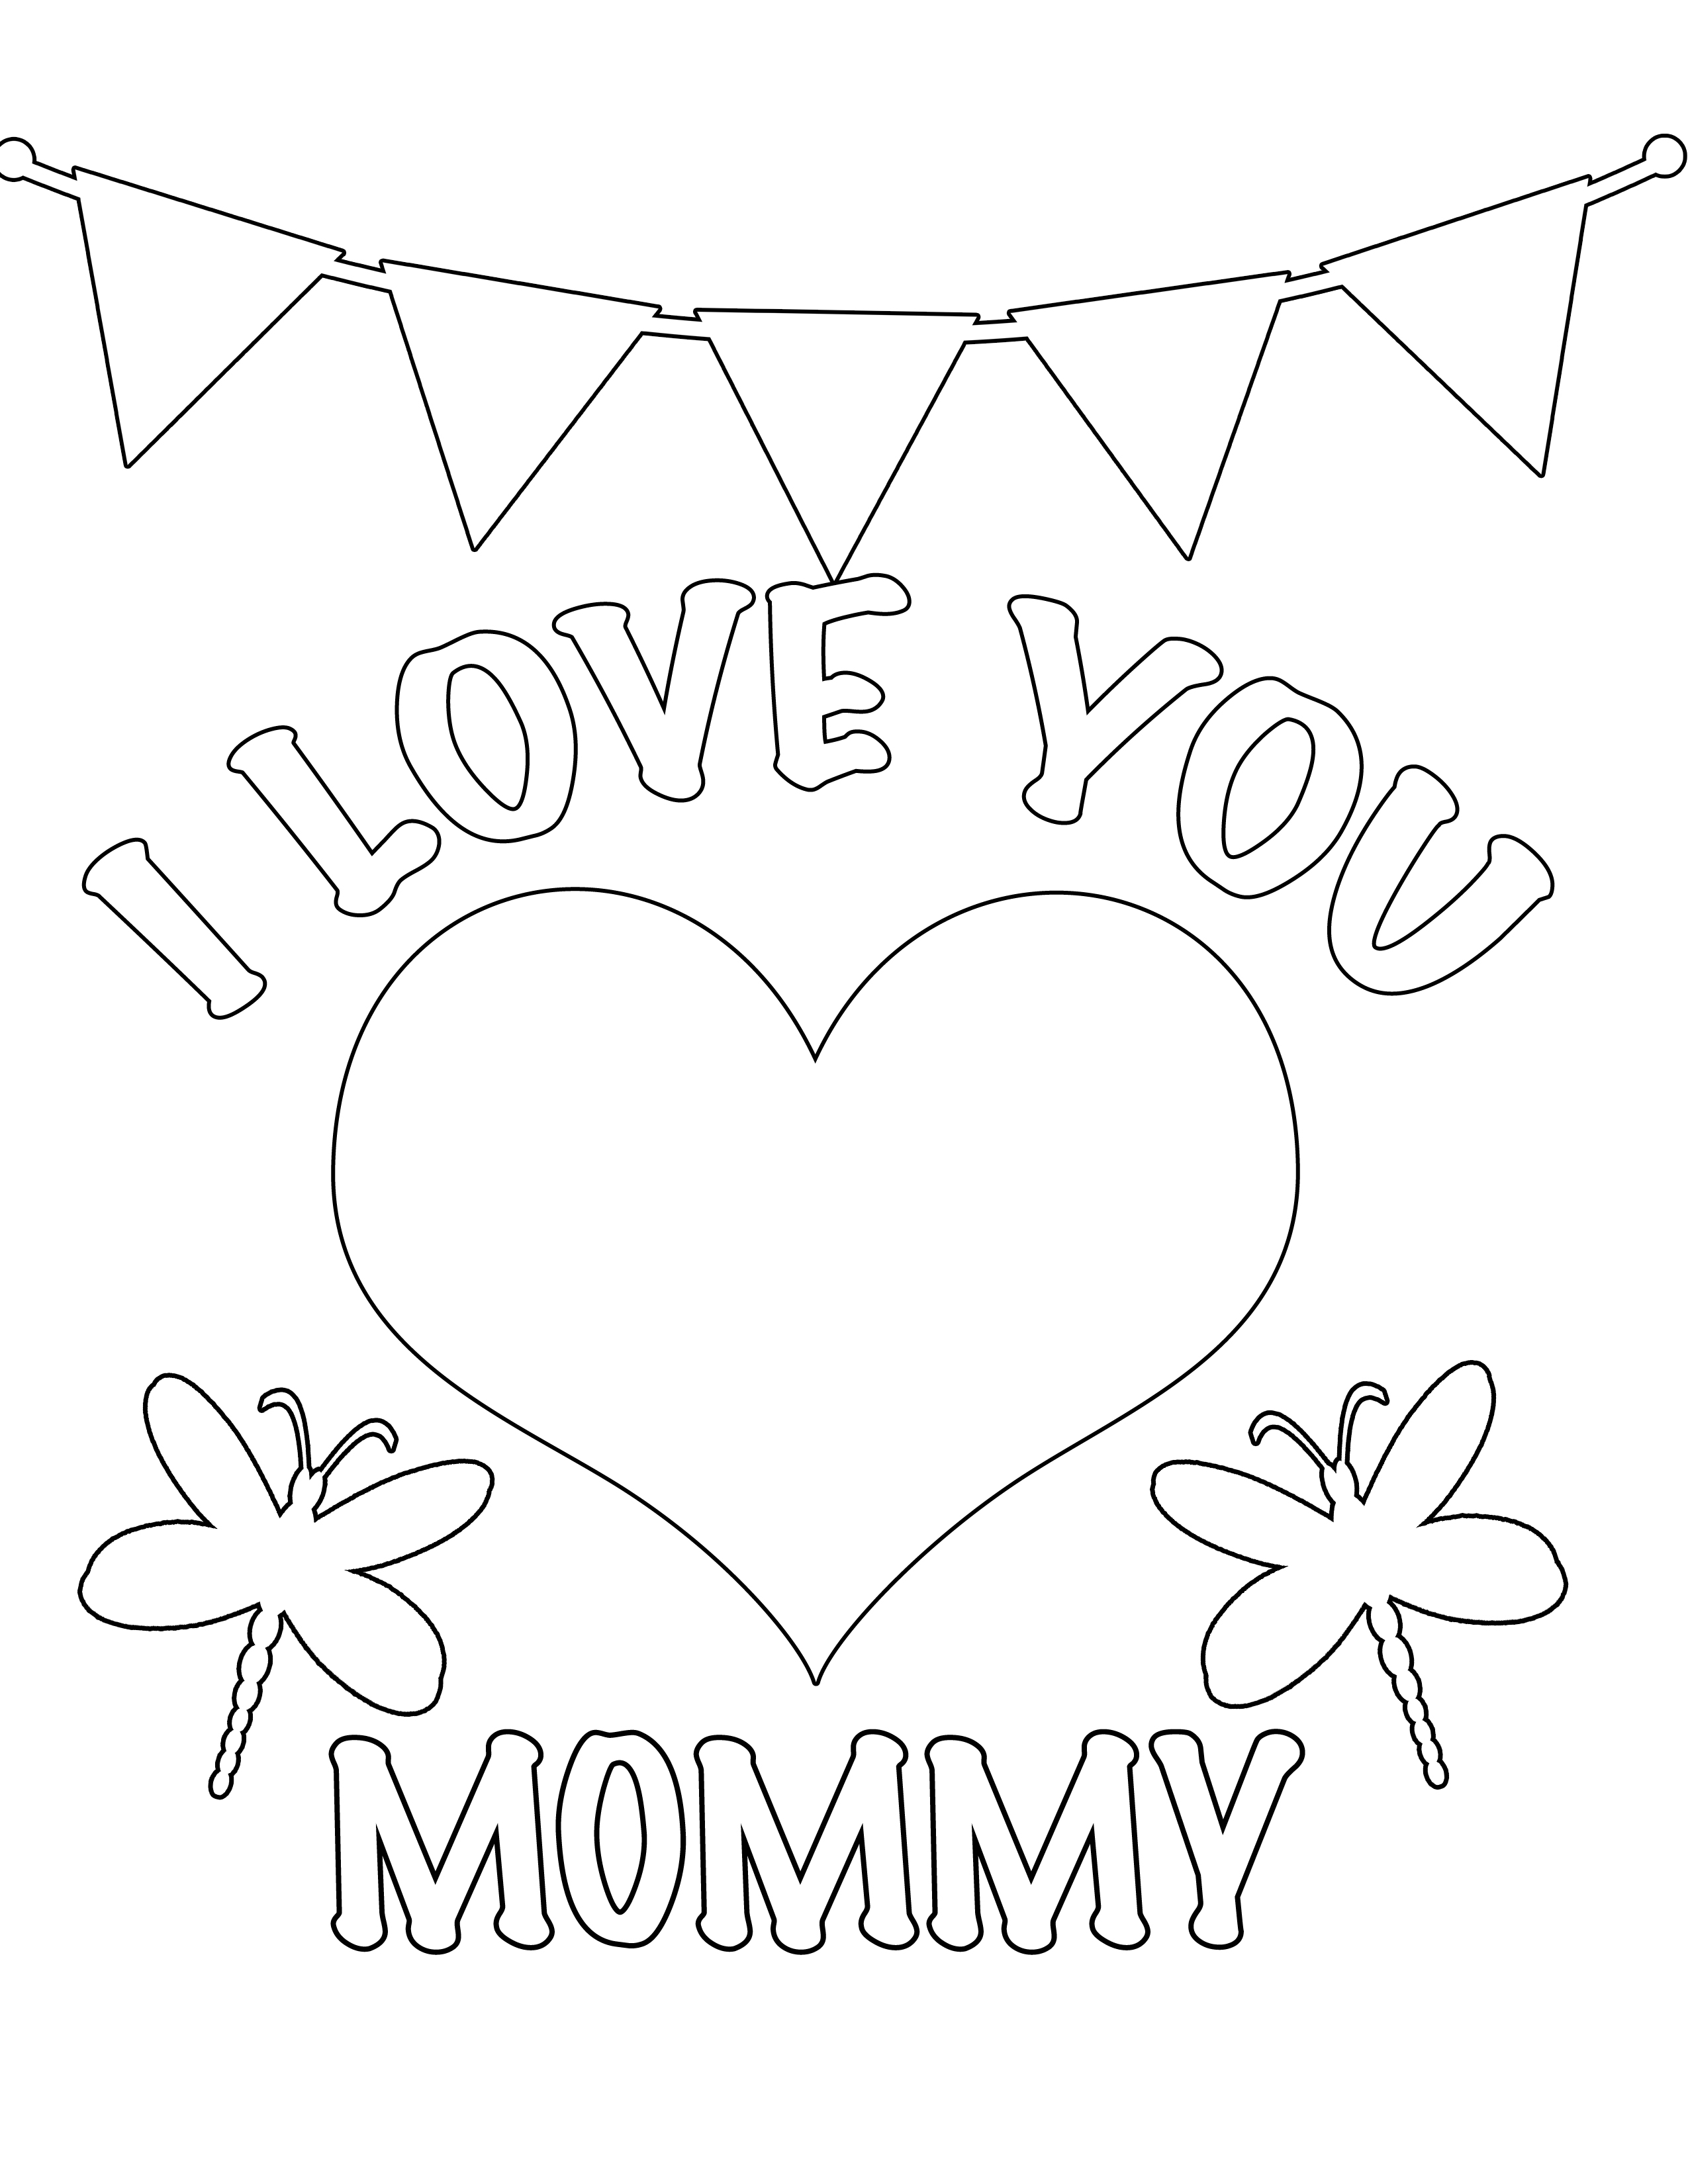 Mommy Drawing at GetDrawings.com | Free for personal use Mommy ...